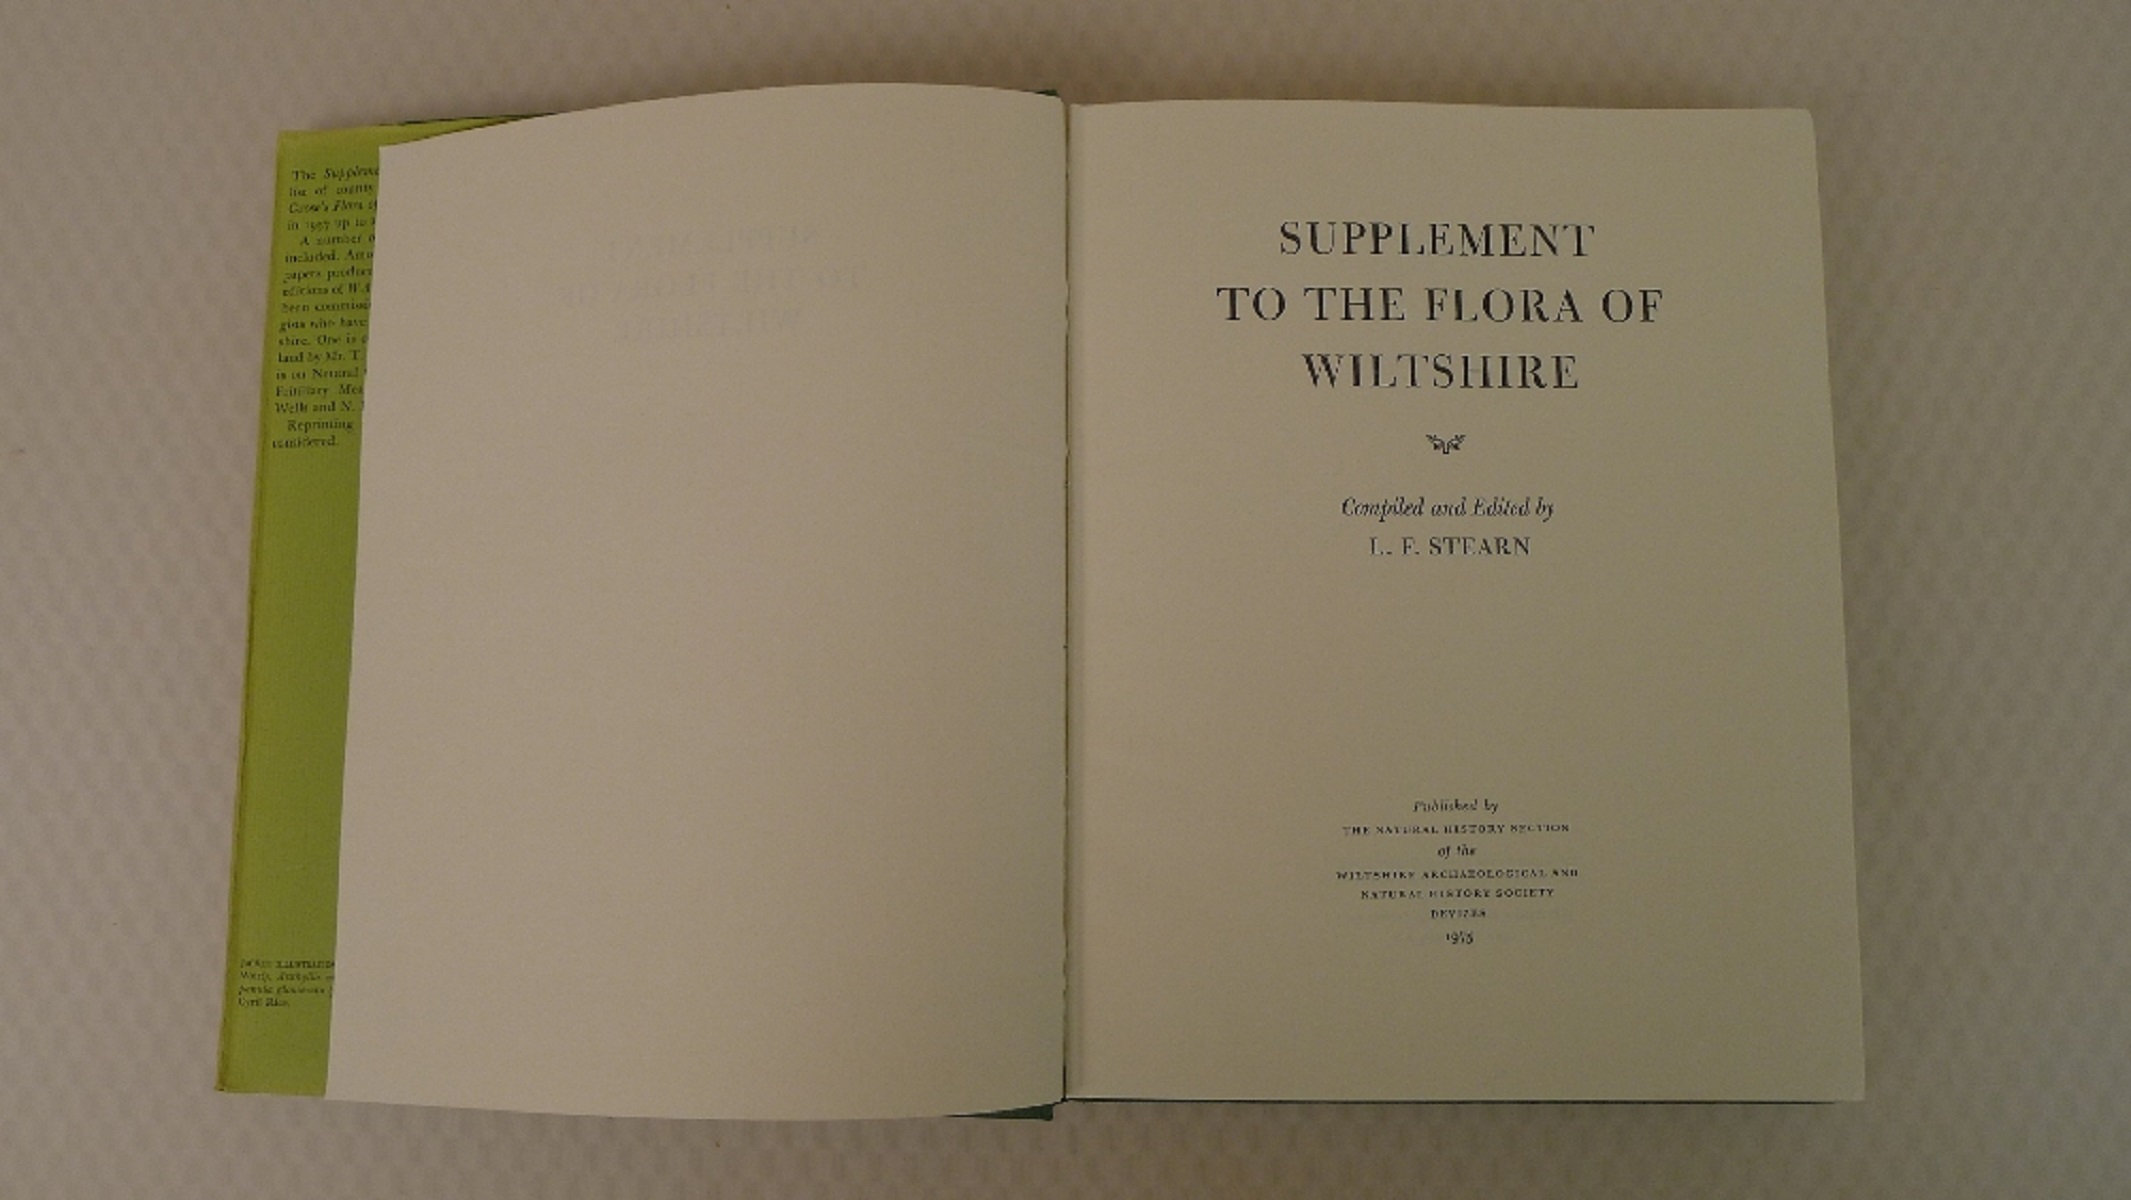 The Flora of Wiltshire by Donald Grose published by the Natural History Section of The Wiltshire - Image 6 of 8